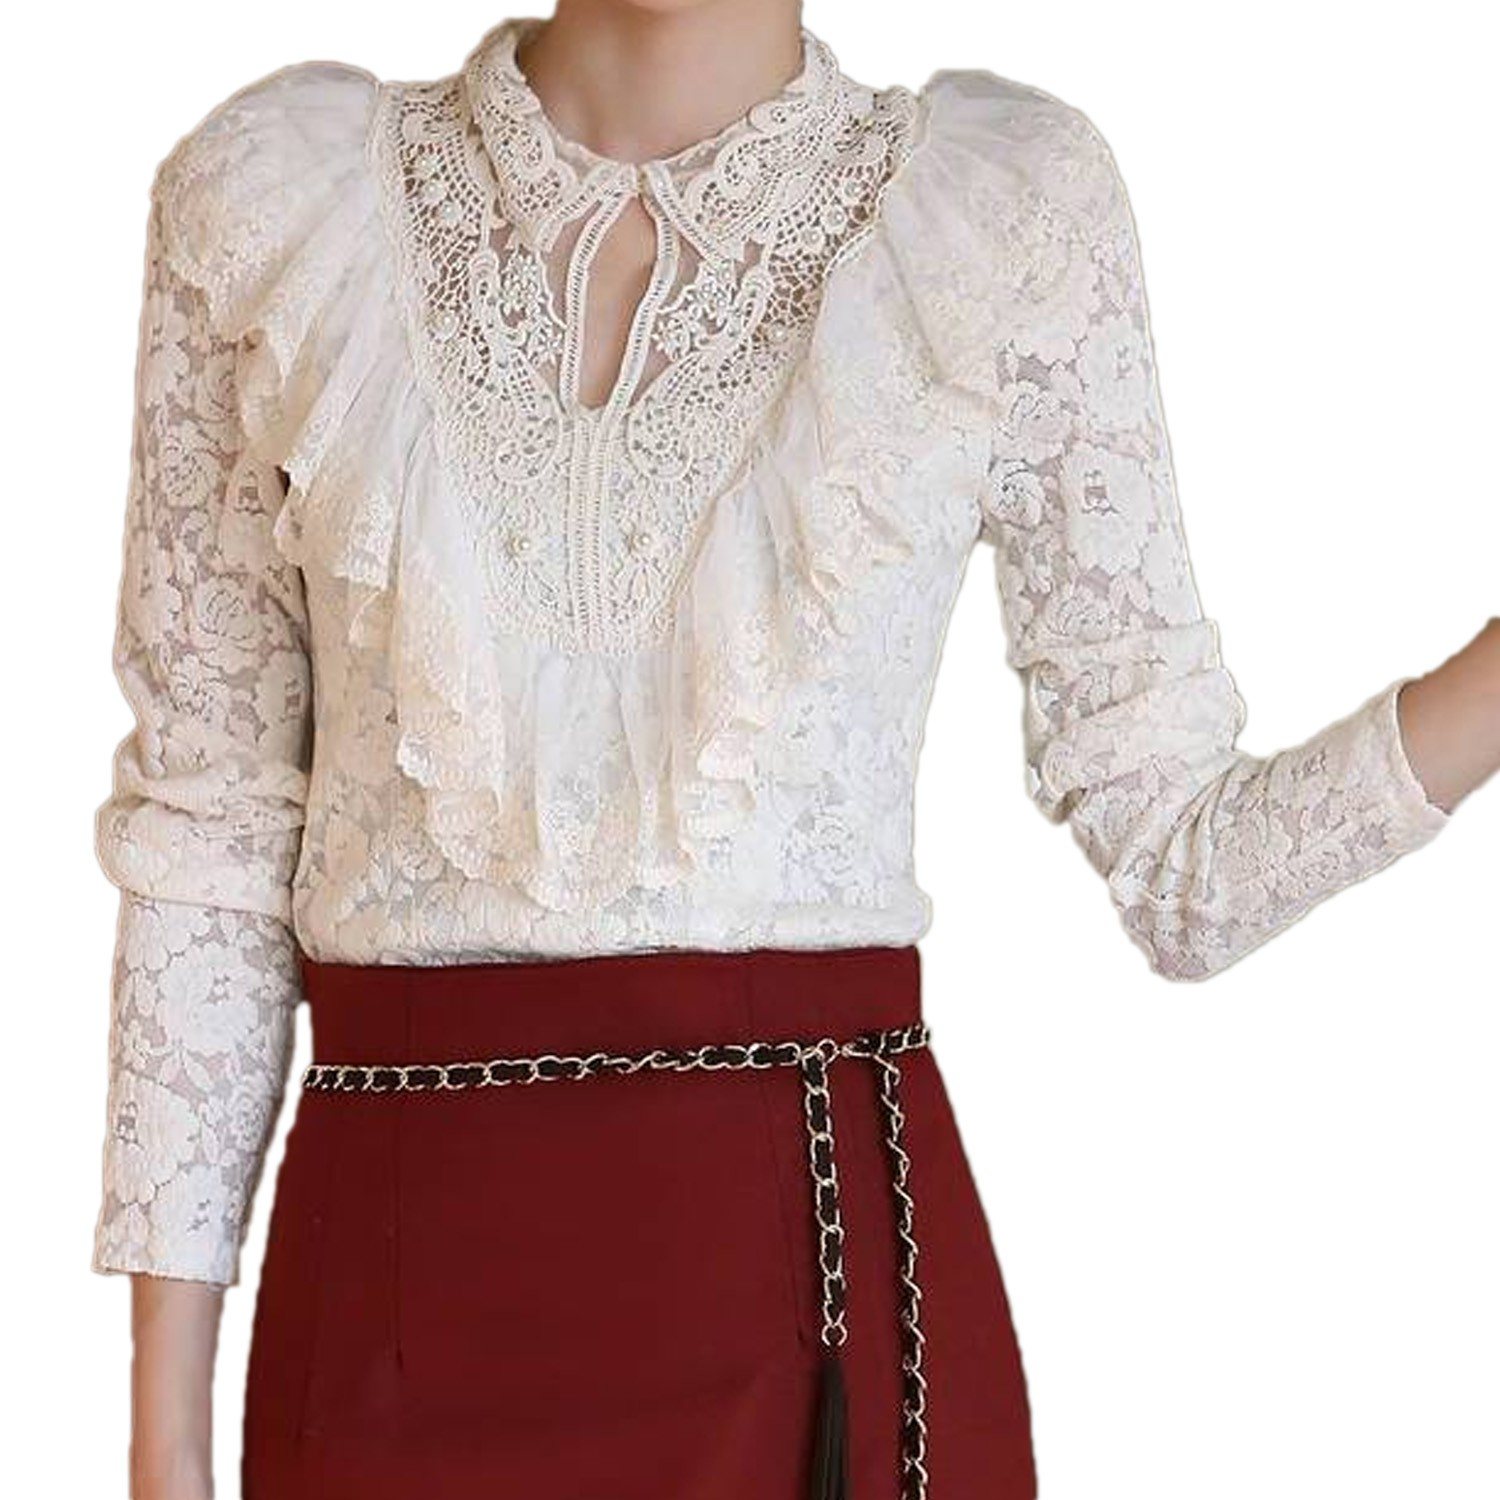 Victorian Lace Shirt Blouse Top Sz XS-L - 8135#